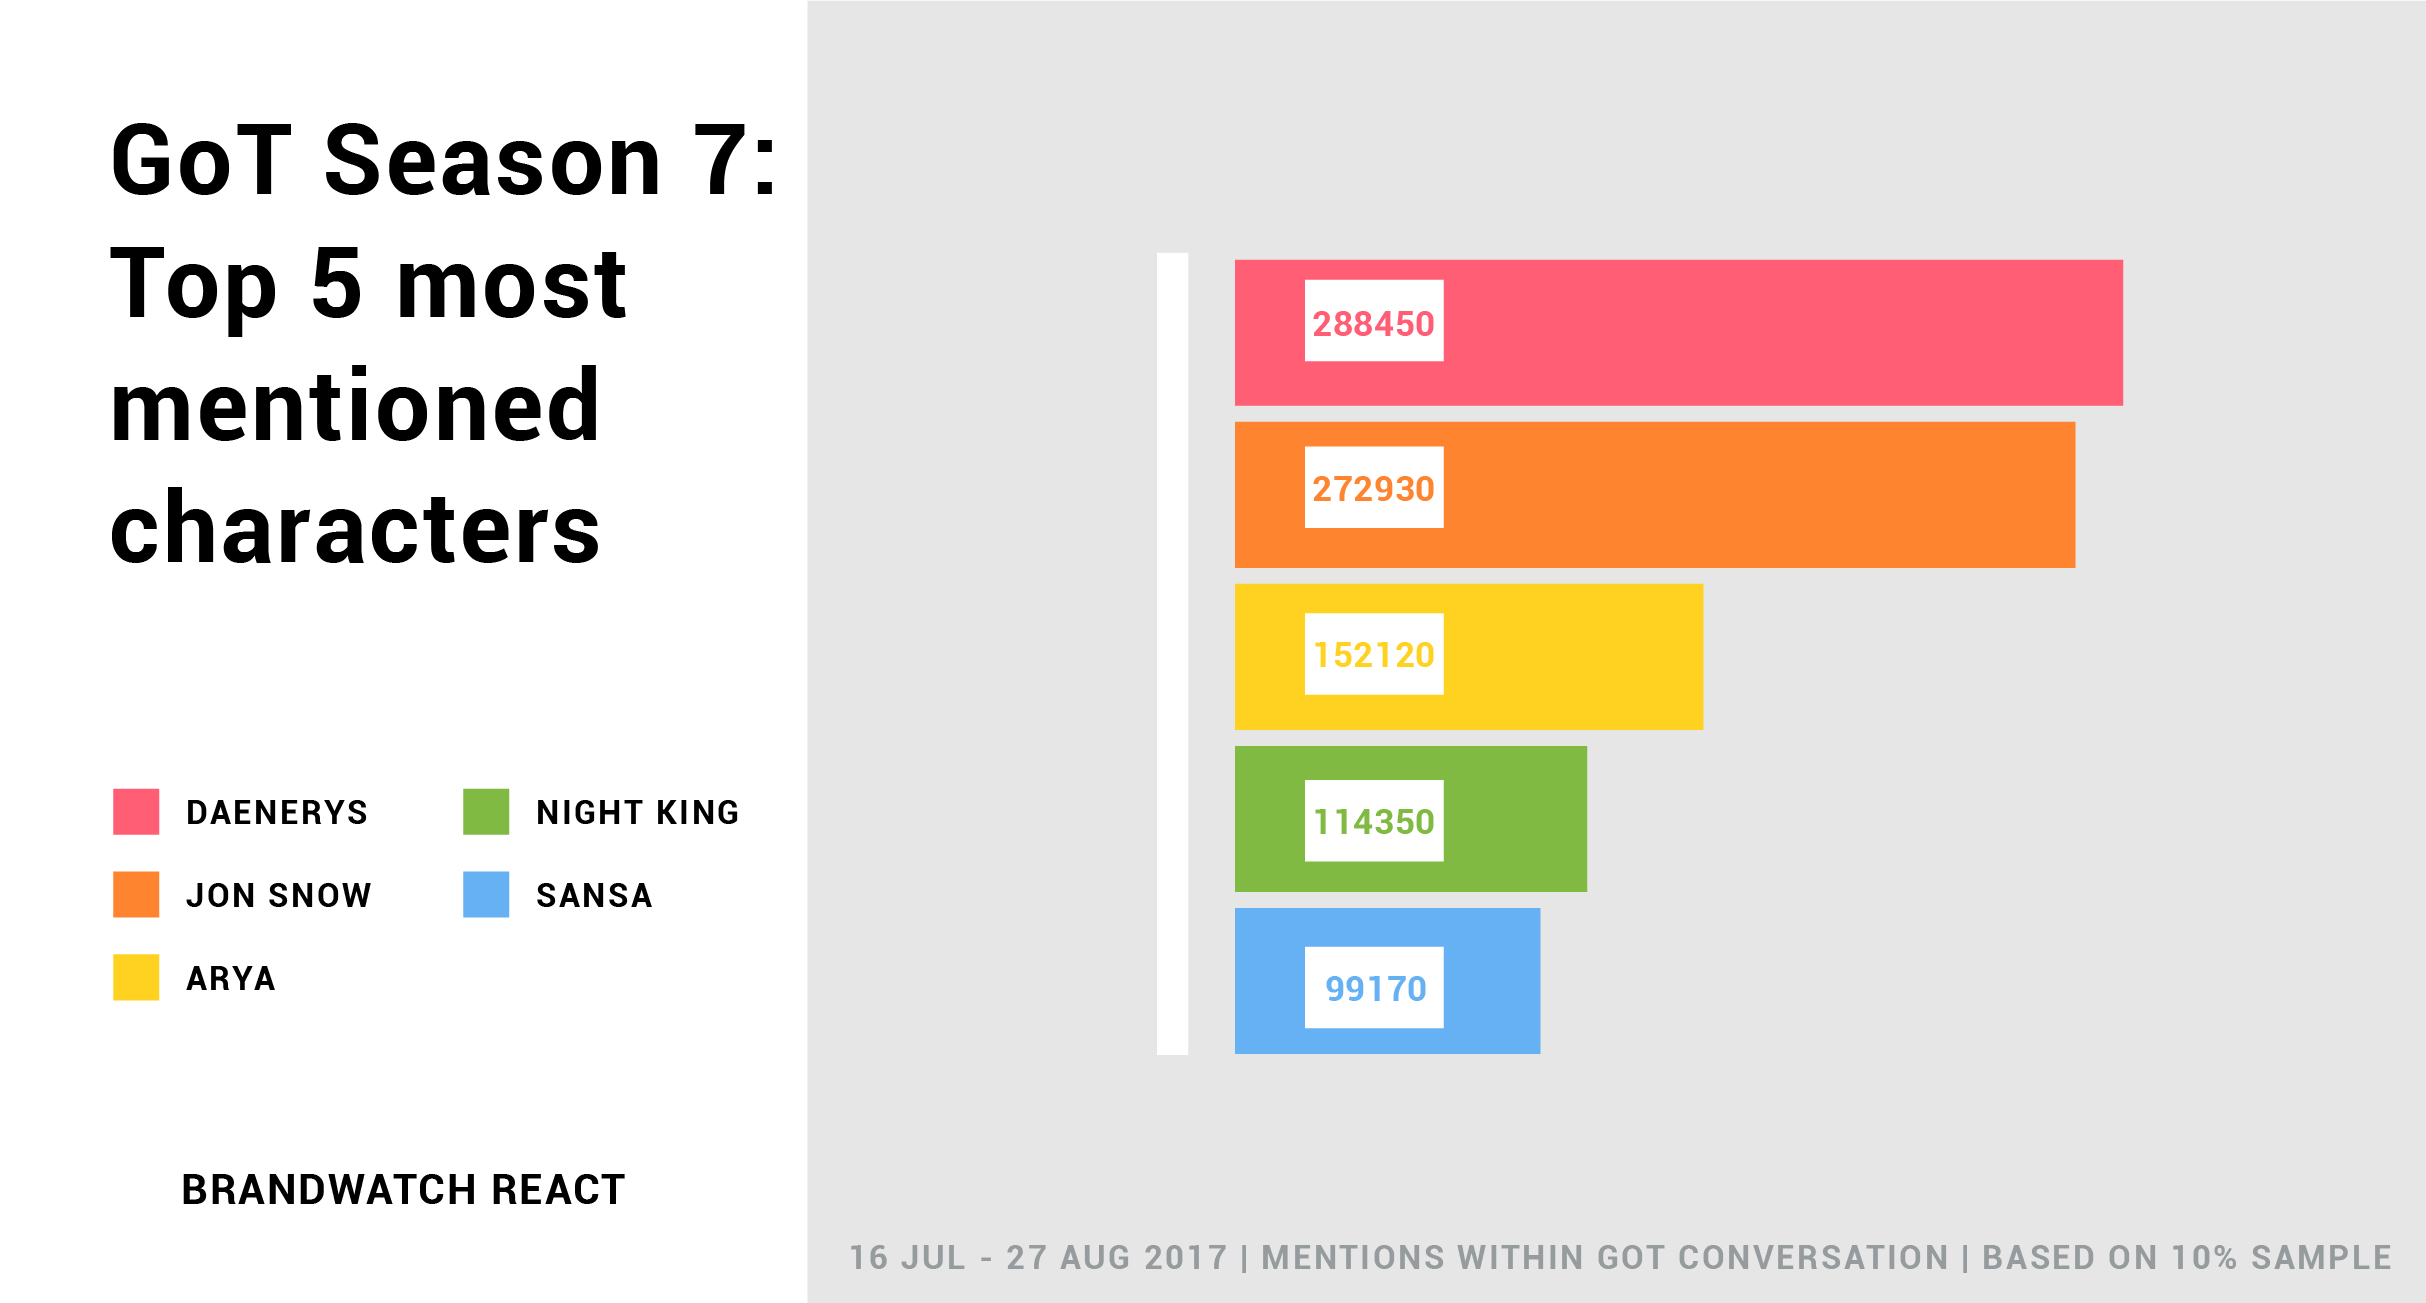 Game of Thrones Season 7 data reveals the top mentioned characters of the season. In order, 1. Daenerys, 2. Jon Snow, 3. Arya, 4. Night King, 5. Sansa